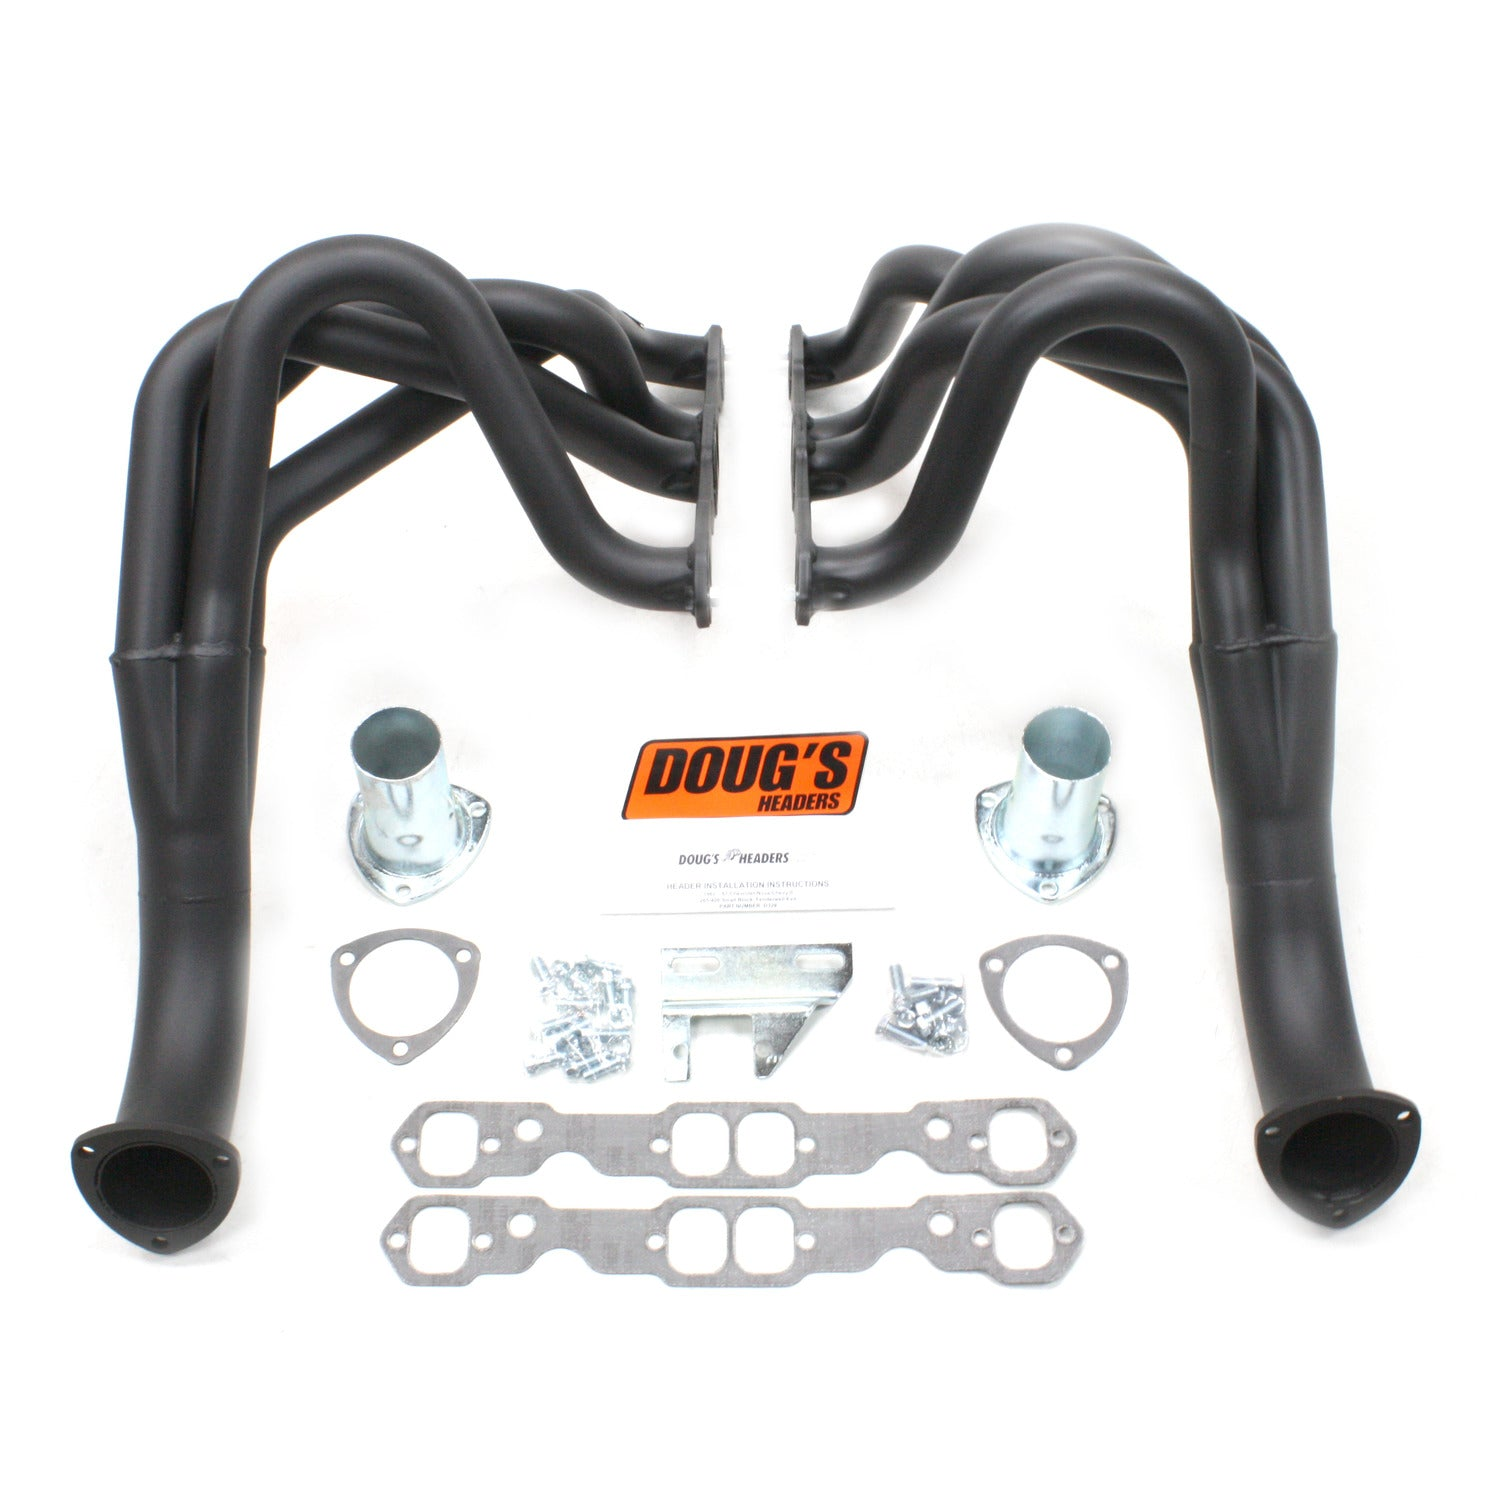 "Doug's Headers D329-B 1 3/4"" 4-Tube Full Length Header Chevy II Small Block Chevrolet 62-67 Hi-Temp Black Coating"